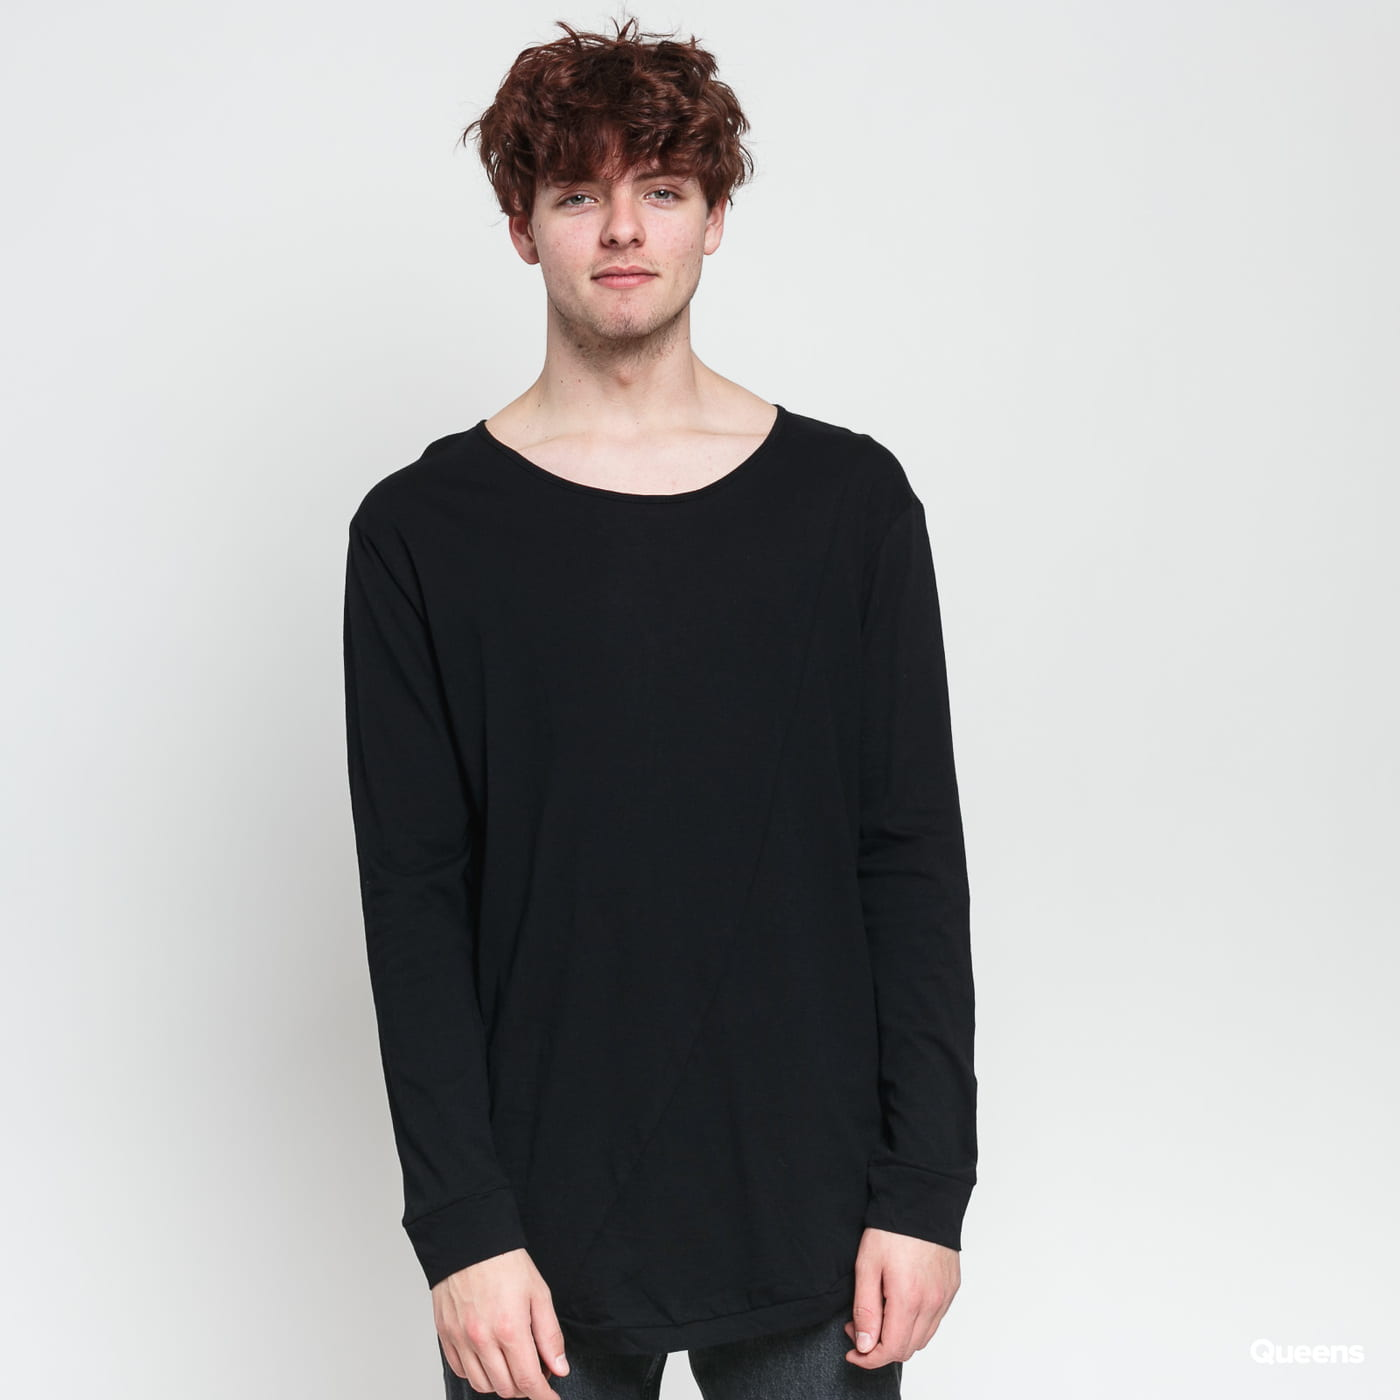 Urban Classics Long Shaped Fashion L/S schwarz